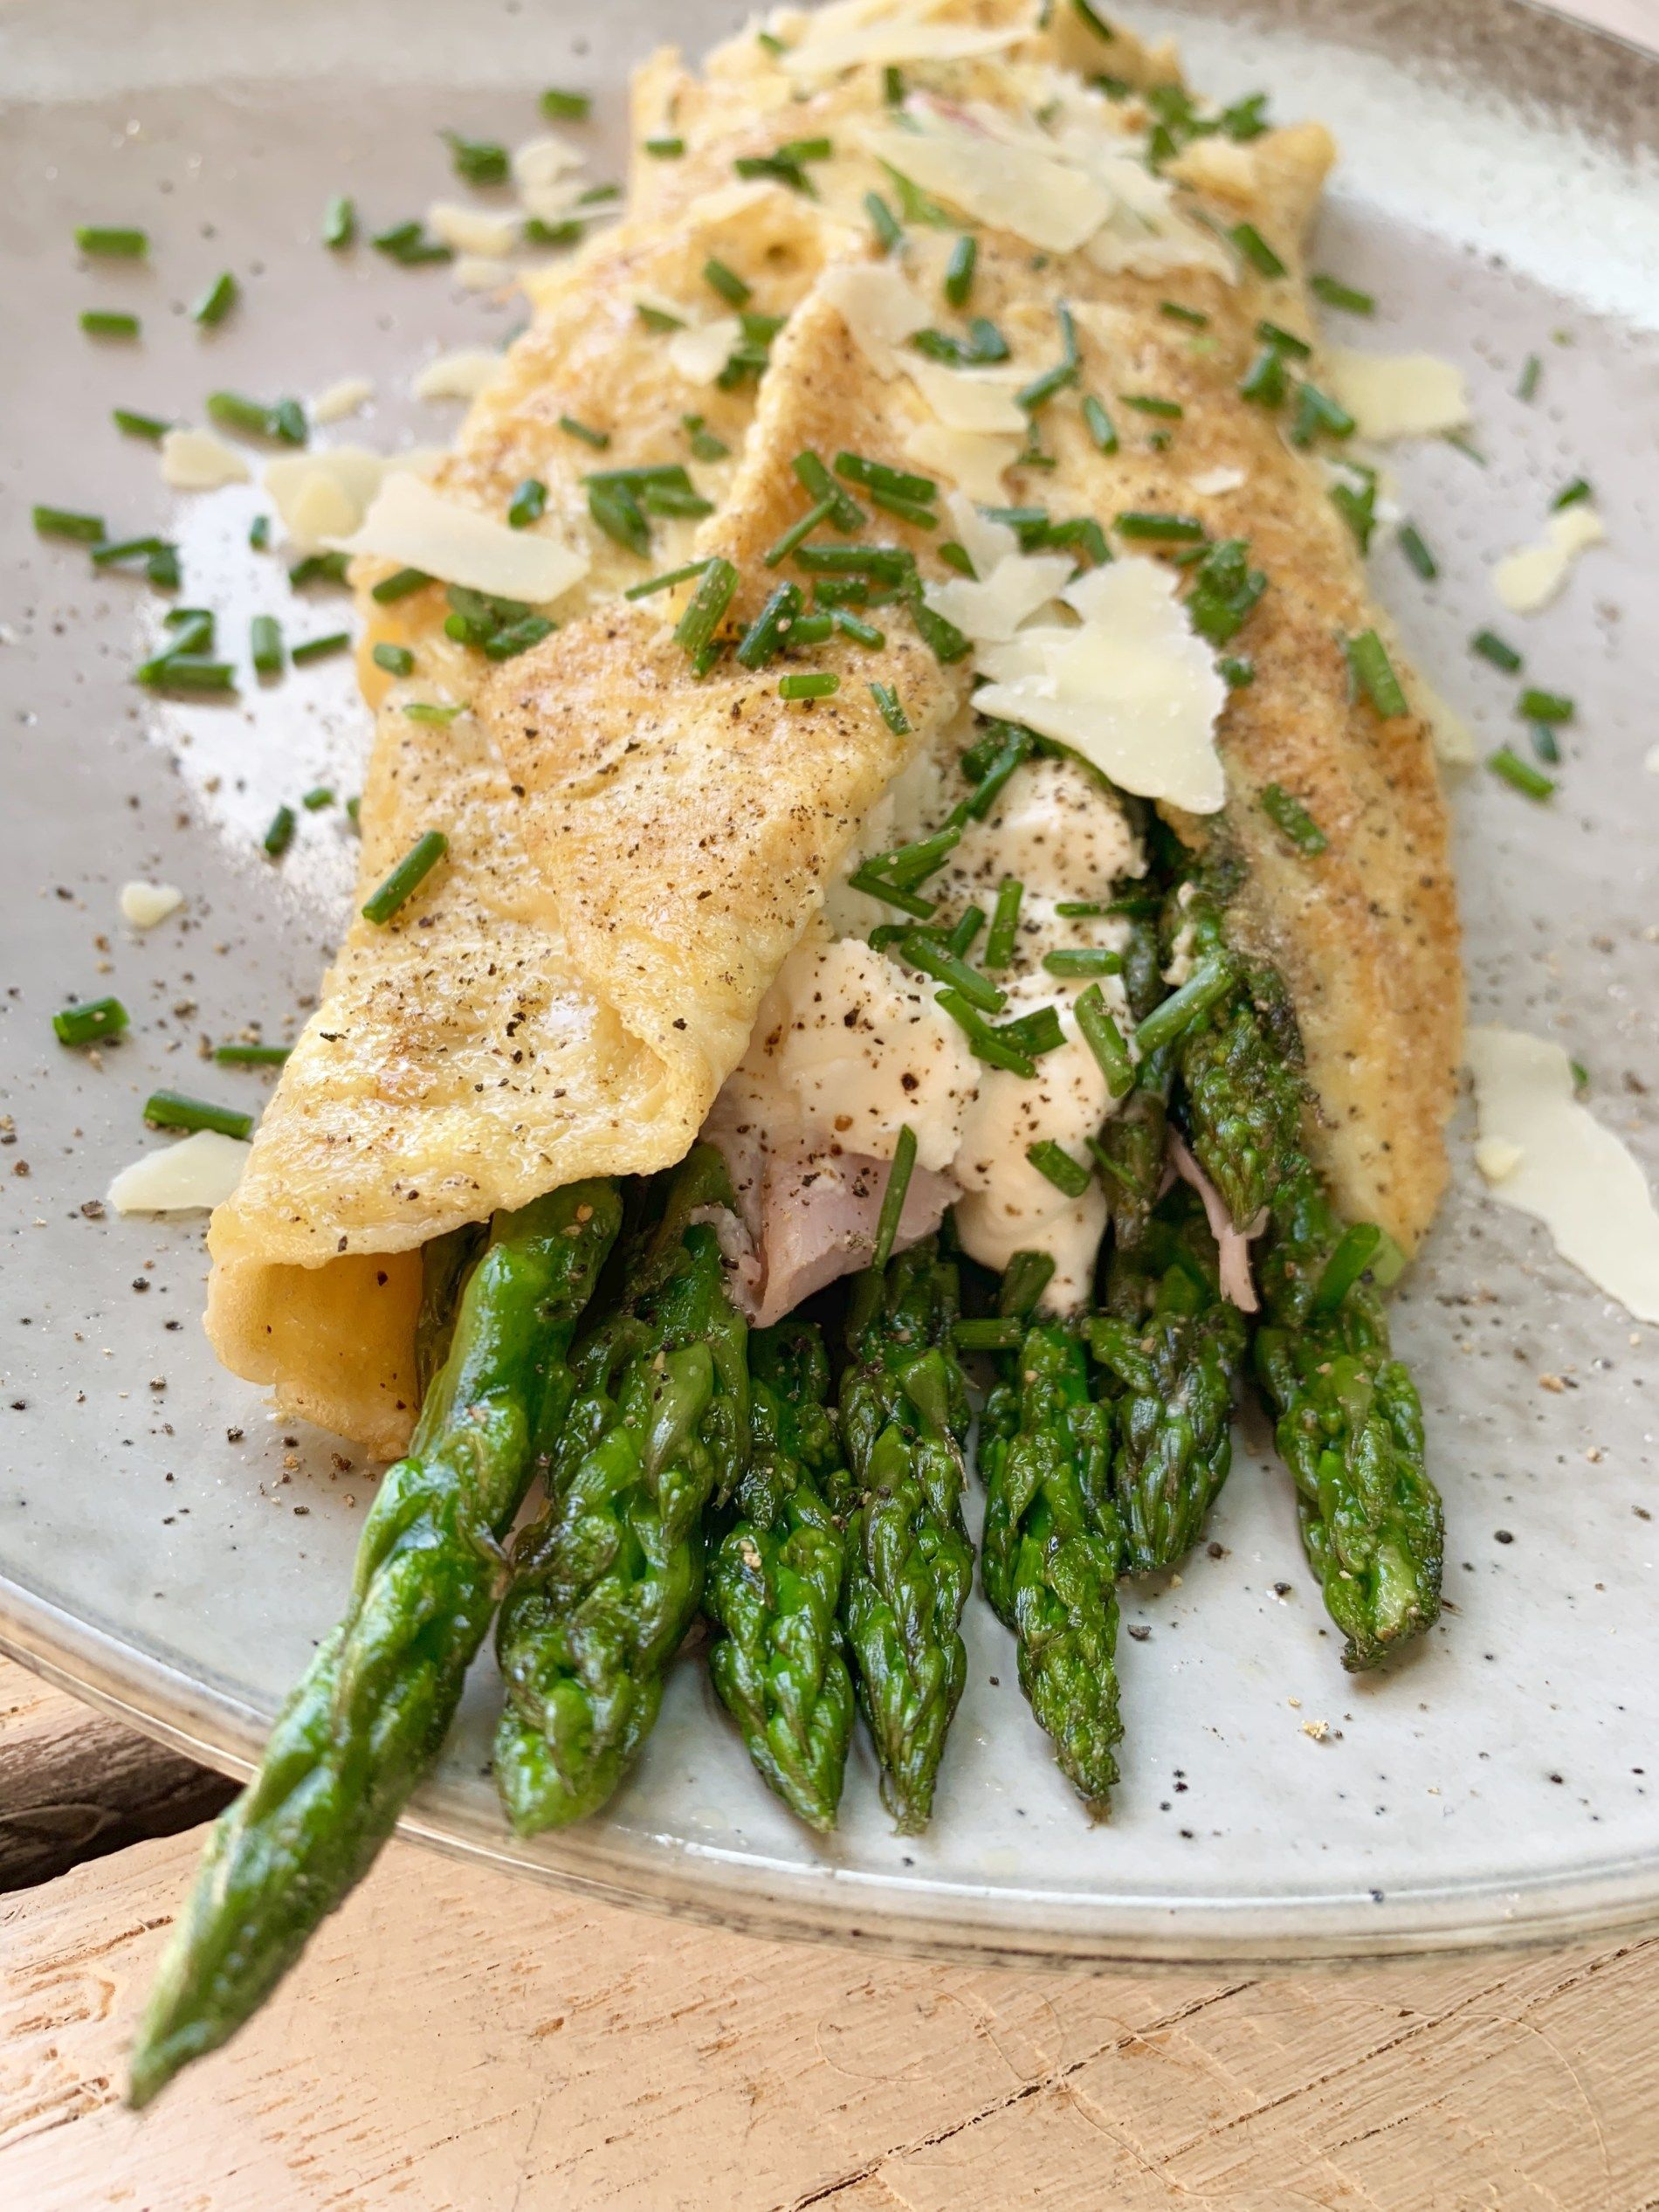 Eat asparagus smoked ham and ricotta cheese omelette